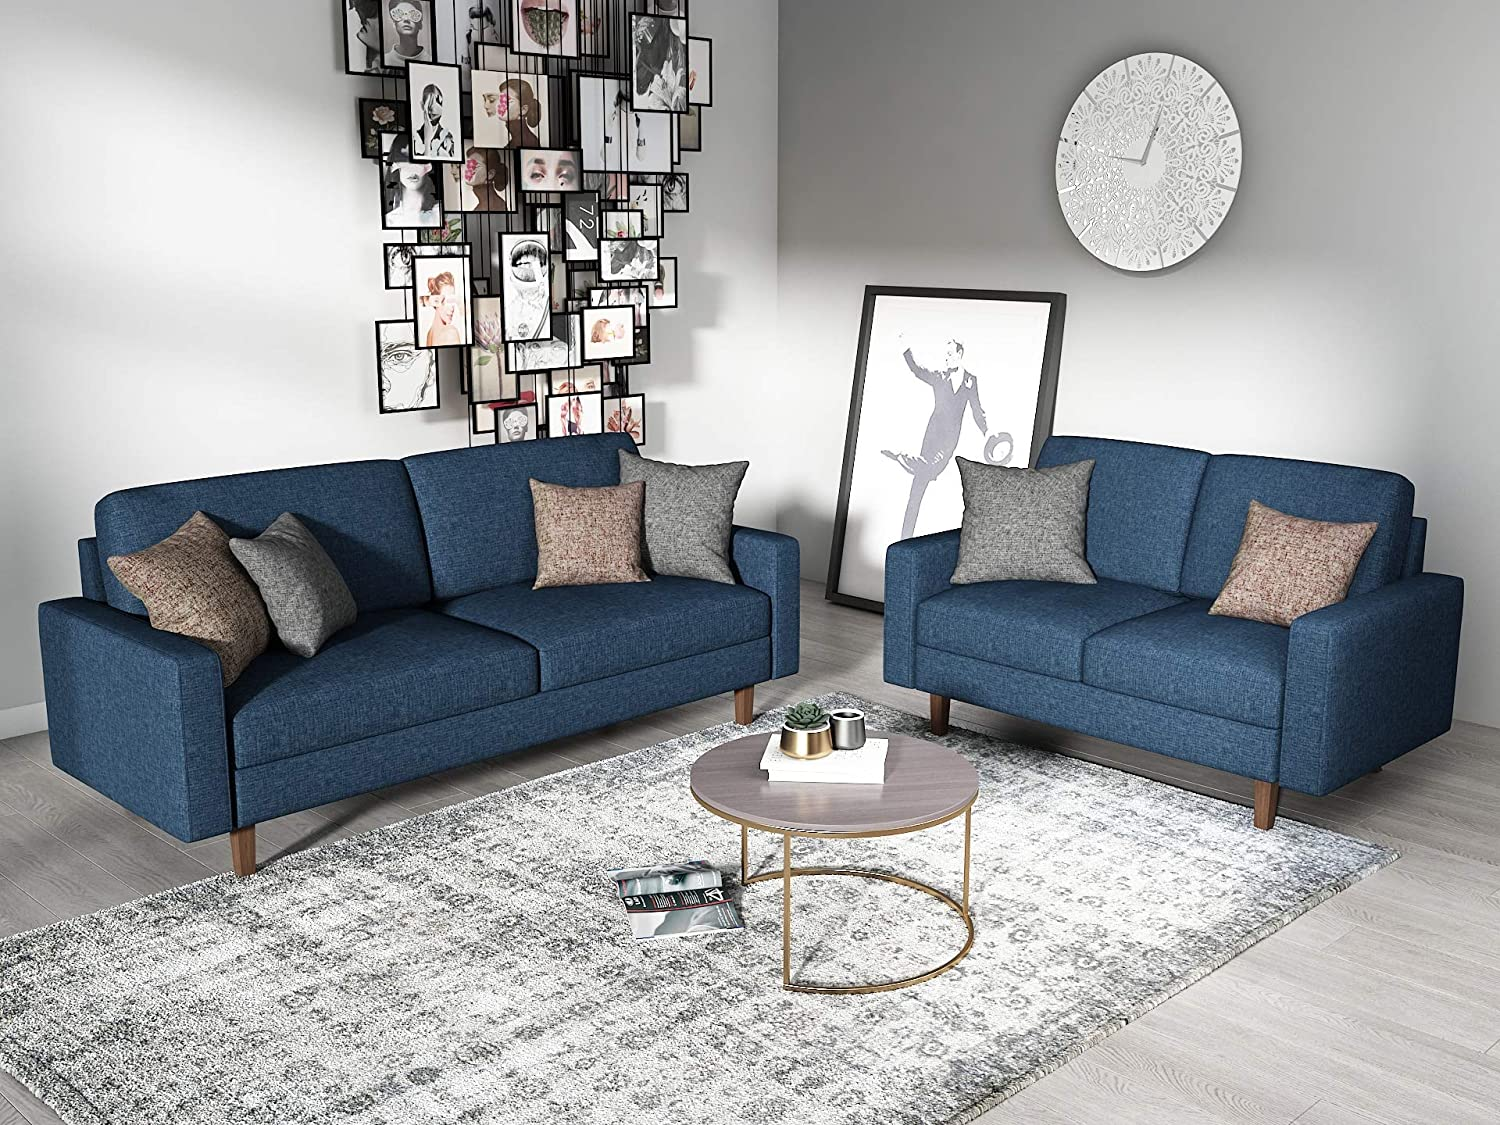 Amazon com container furniture direct s5414 2pc squared mid century modern upholstered 2 piece living room sofa set dark blue kitchen dining